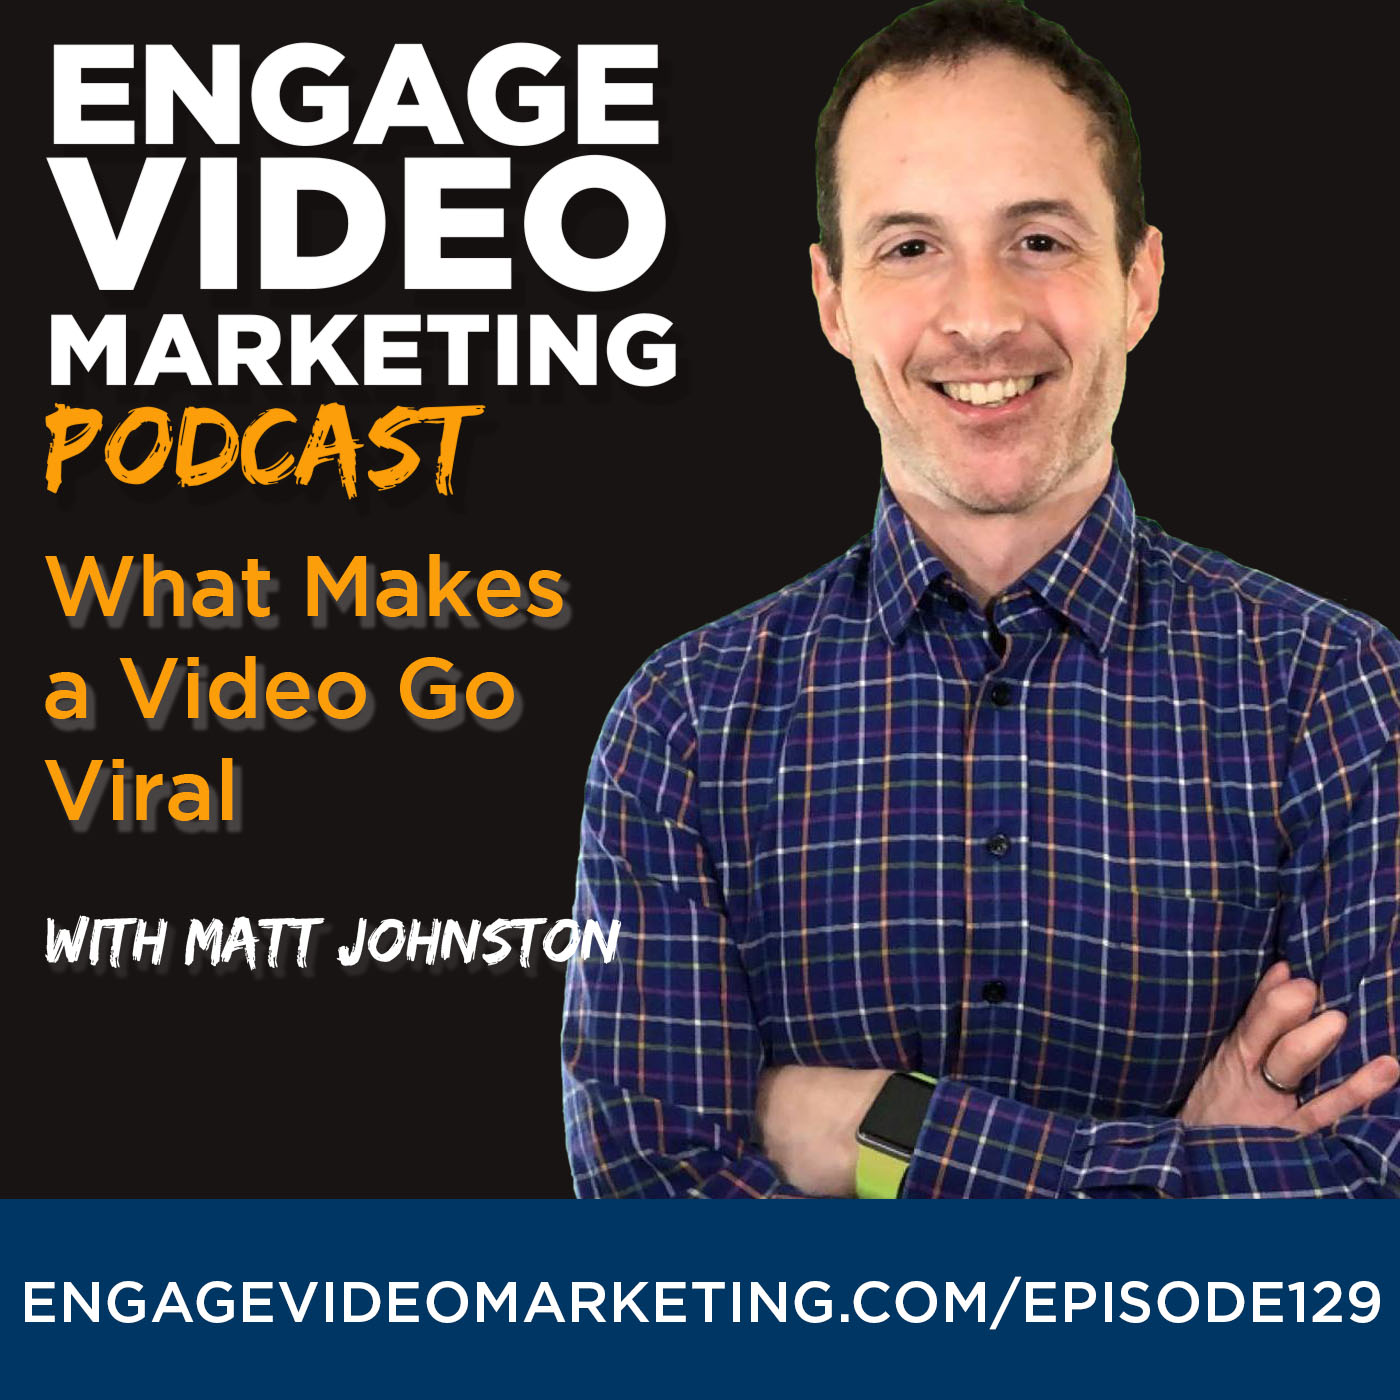 What Makes a Video Go Viral with Matt Johnston